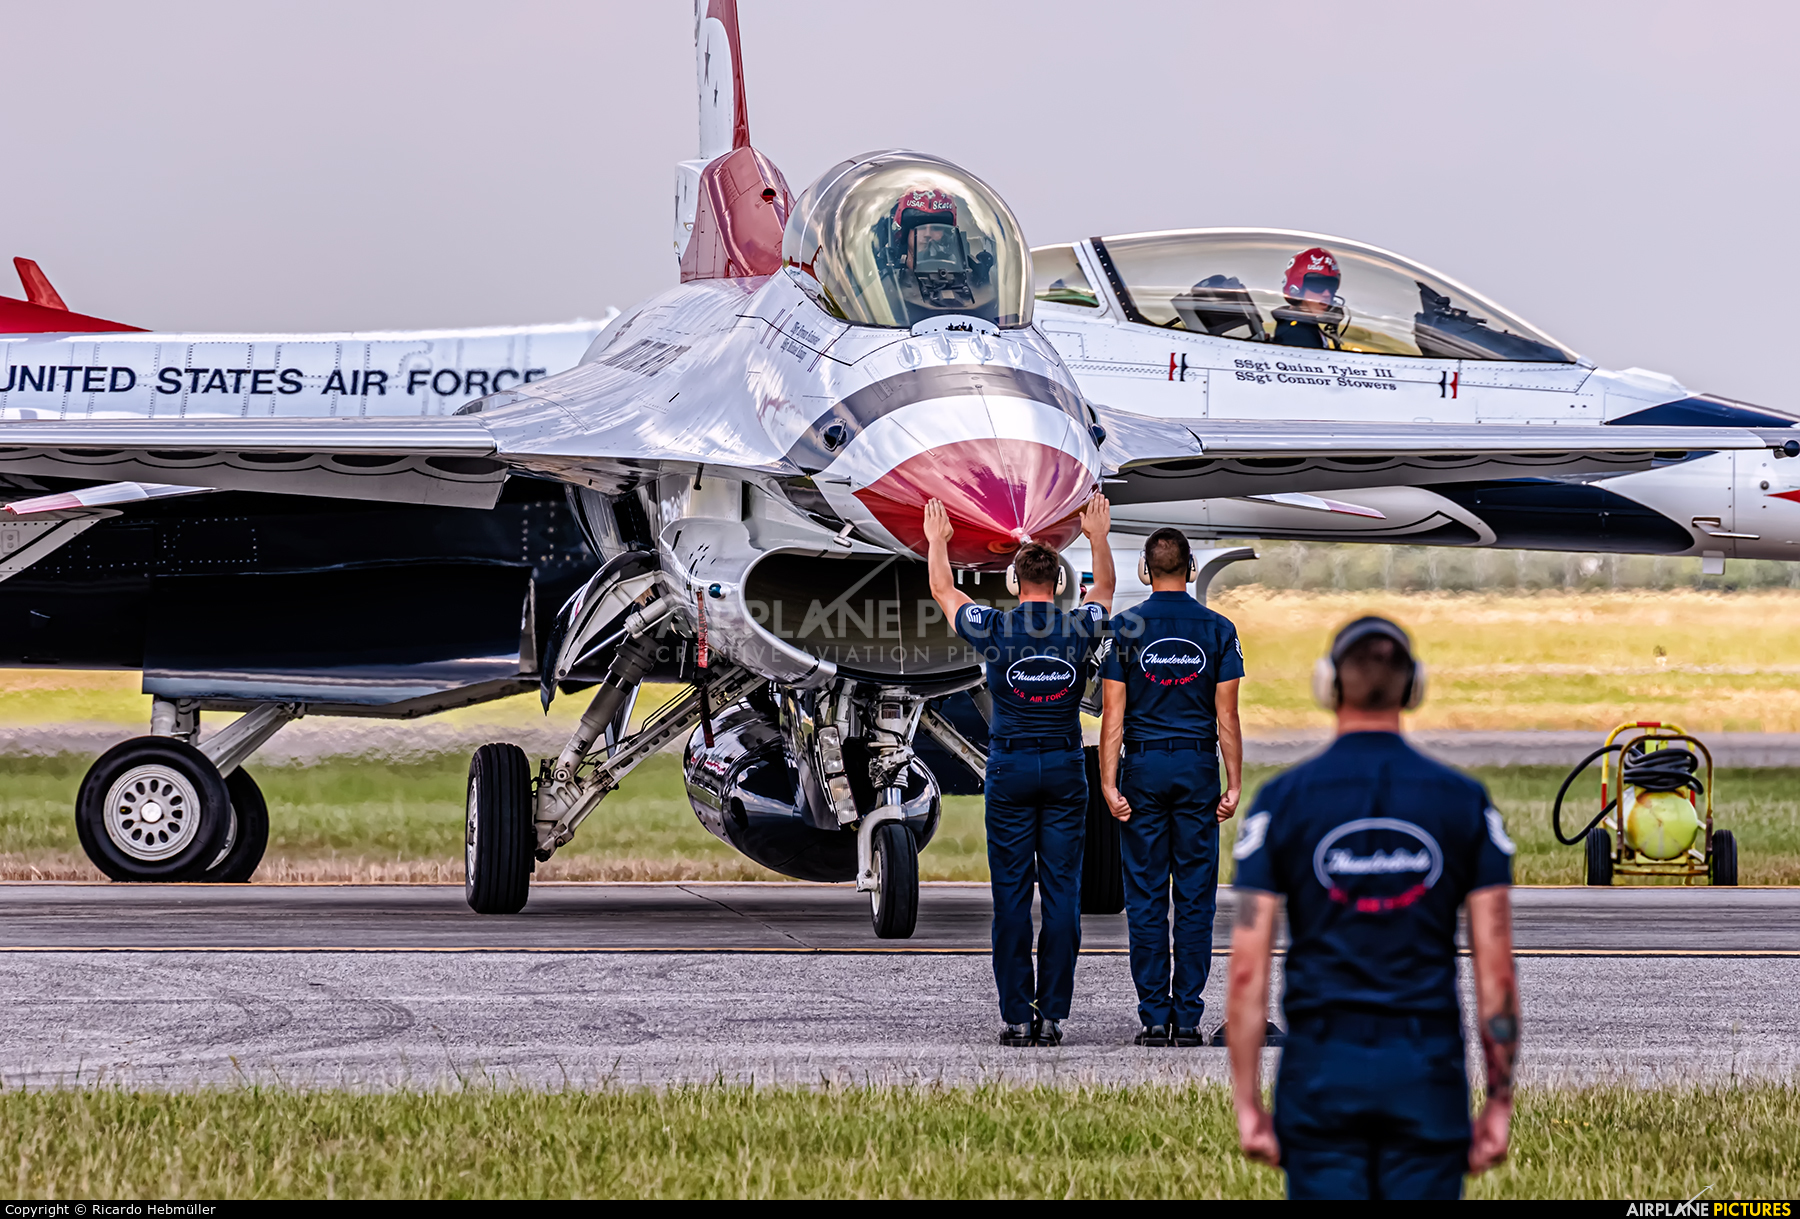 USA - Air Force : Thunderbirds 91-0479 aircraft at Houston - Ellington Field